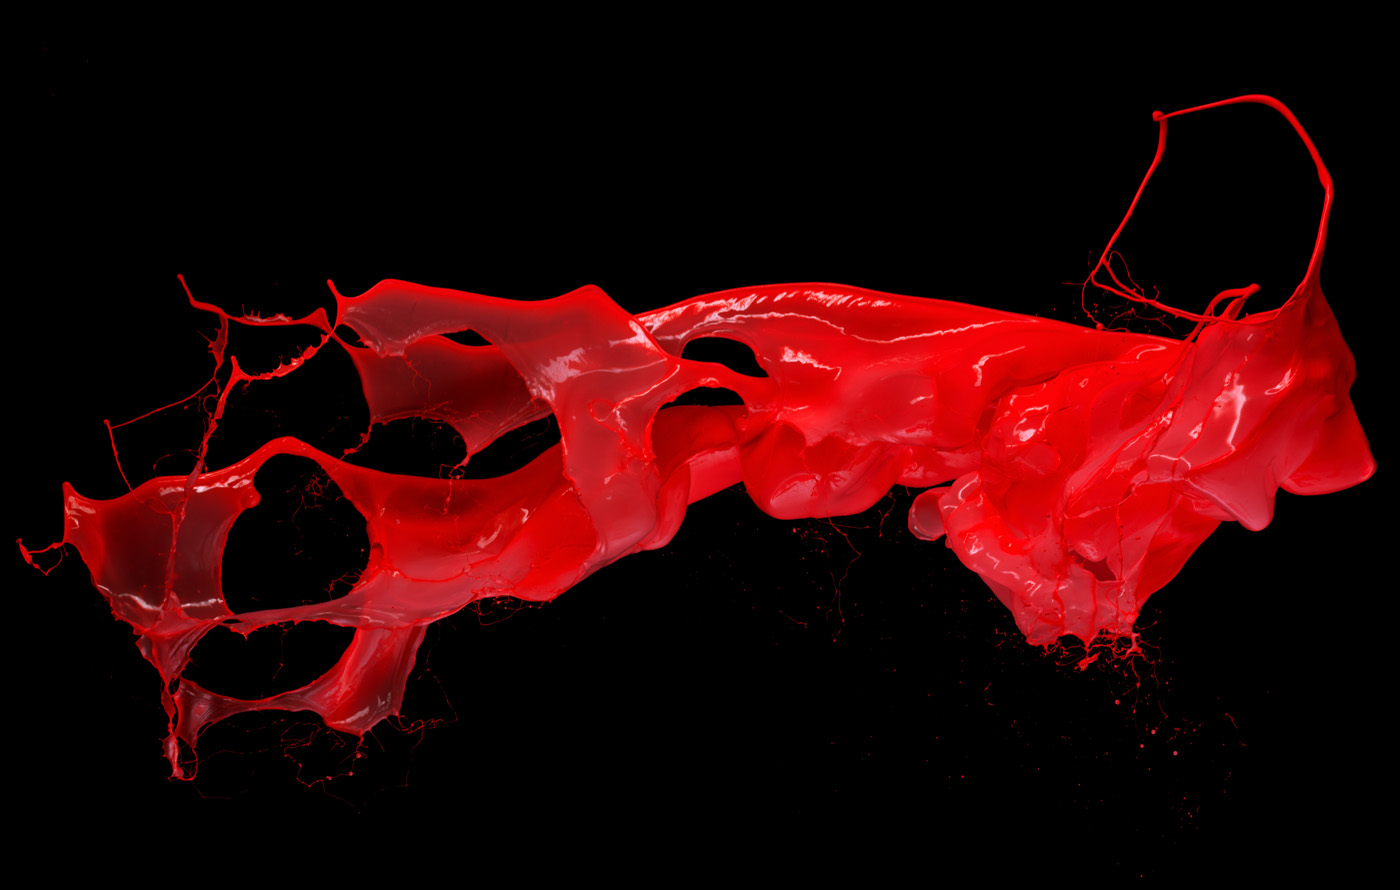 Splash of red liquid dynamic 8773